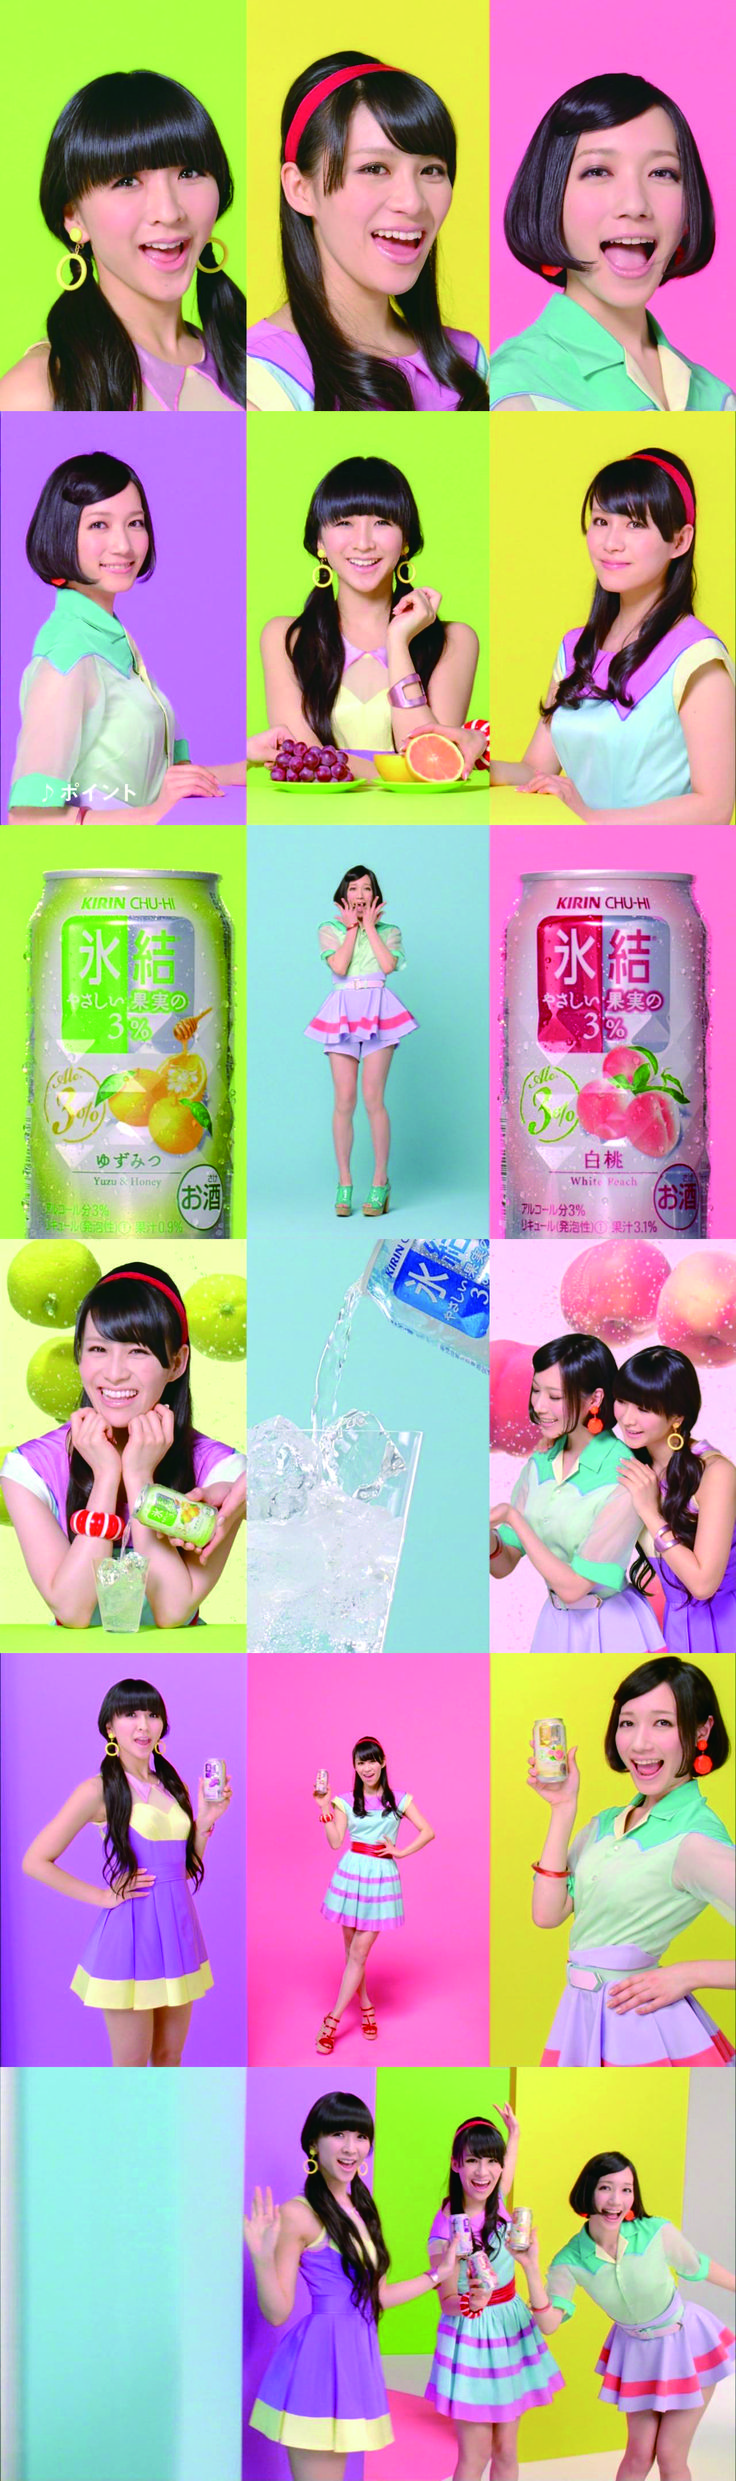 Perfume 2013 KIRIN氷結 「Triple Screen」篇